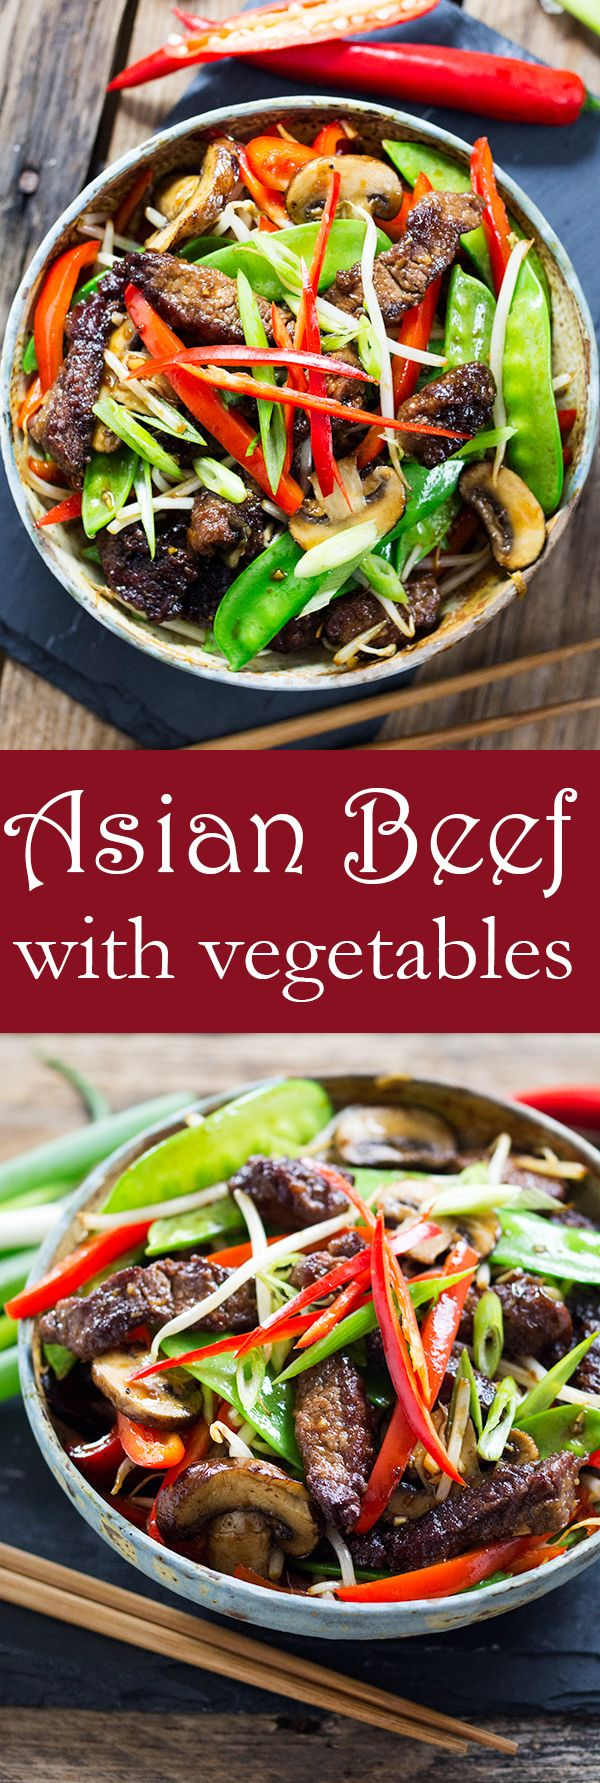 Asian Beef with Vegetables! A quick, nutritious dinner packed full of flavour.